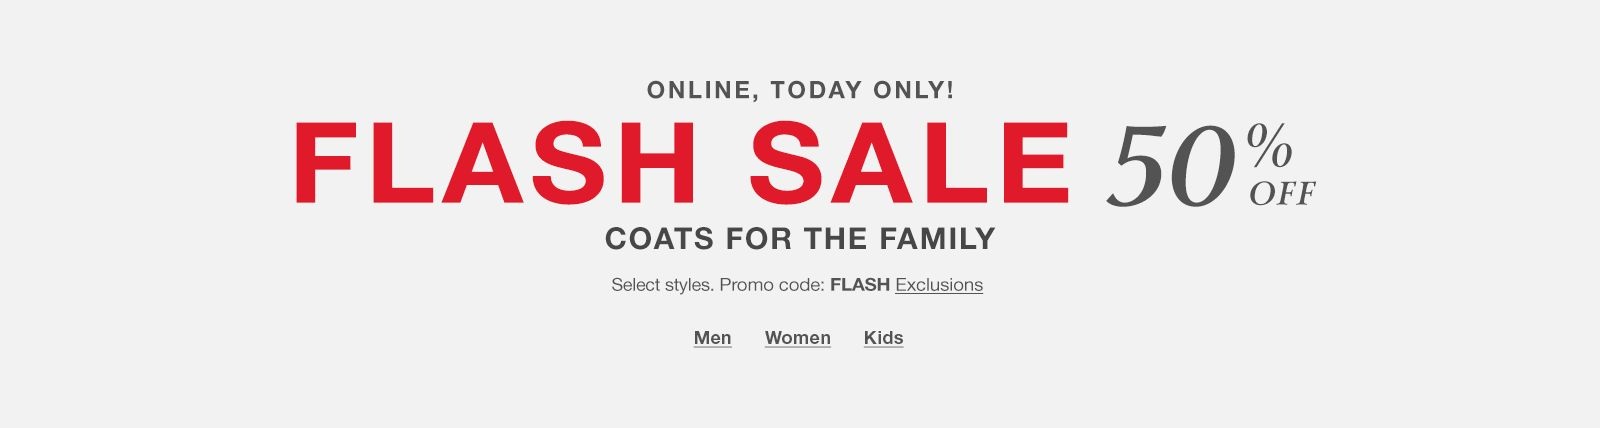 Online, Today Only! Flash Sale 50 percent off, Coats for the Family, Select styles promo code: FLASH Exclusions, Shop Now